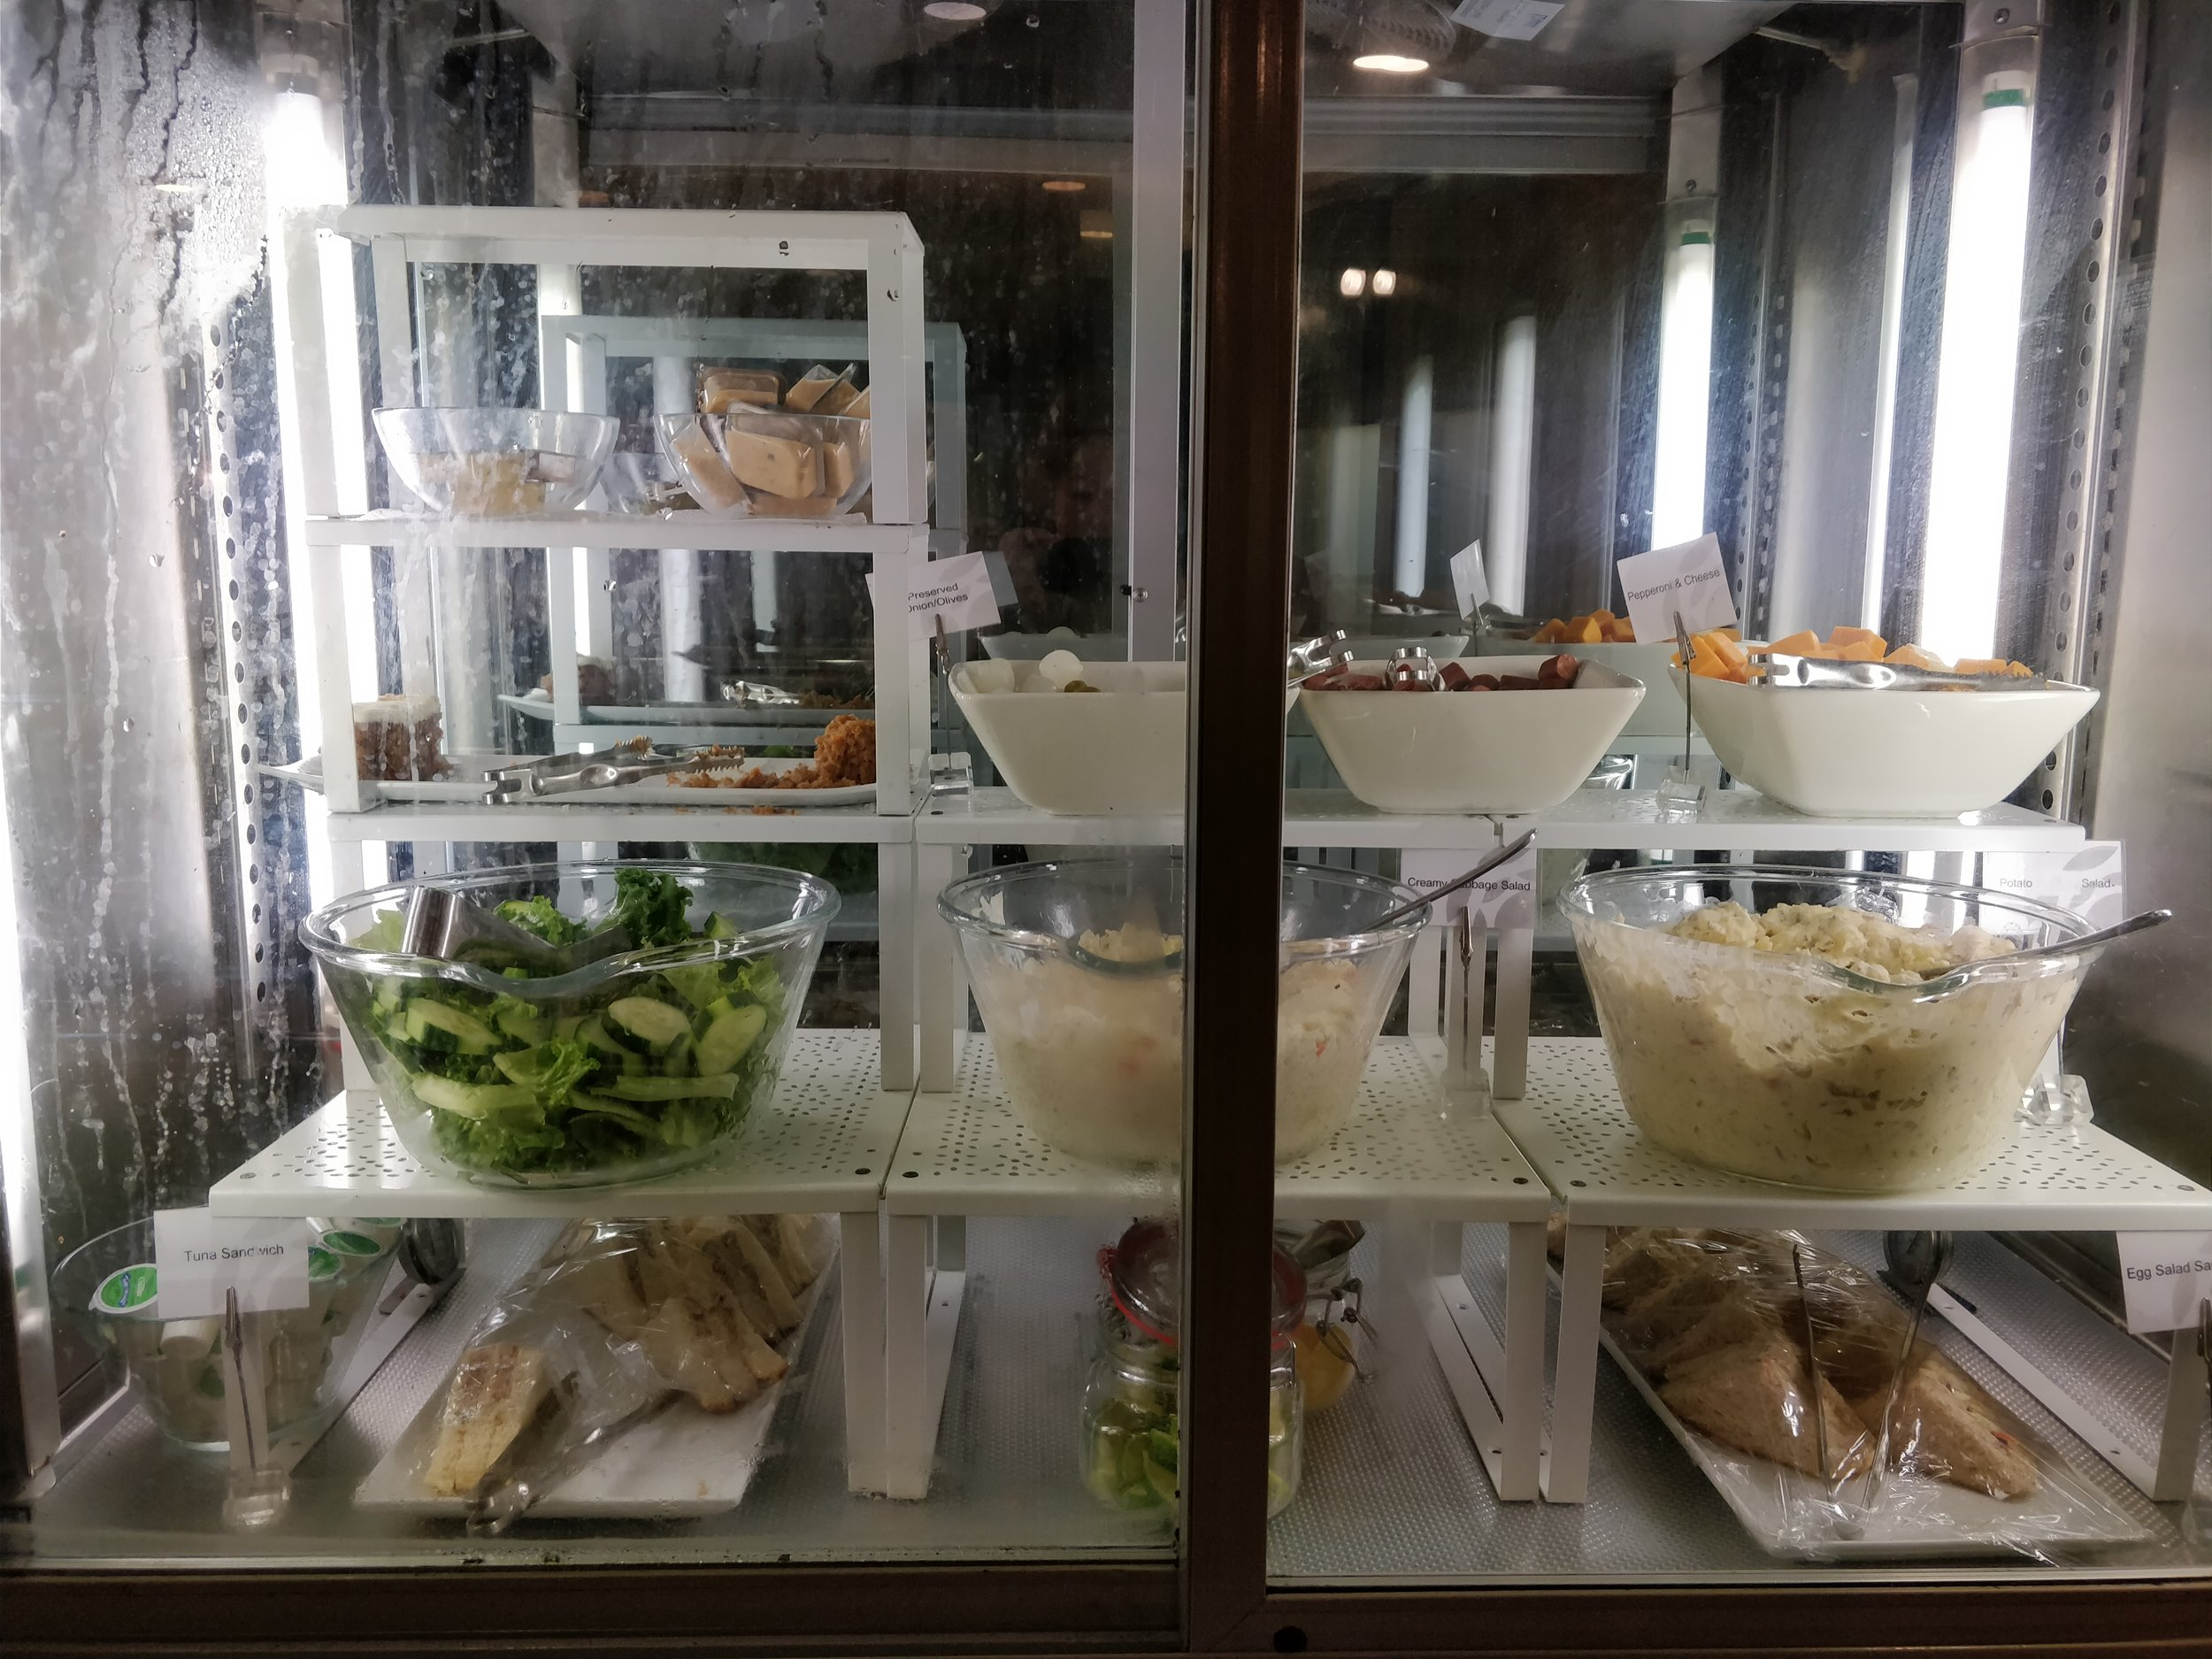 cold sandwiches, salads, and assorted cheese